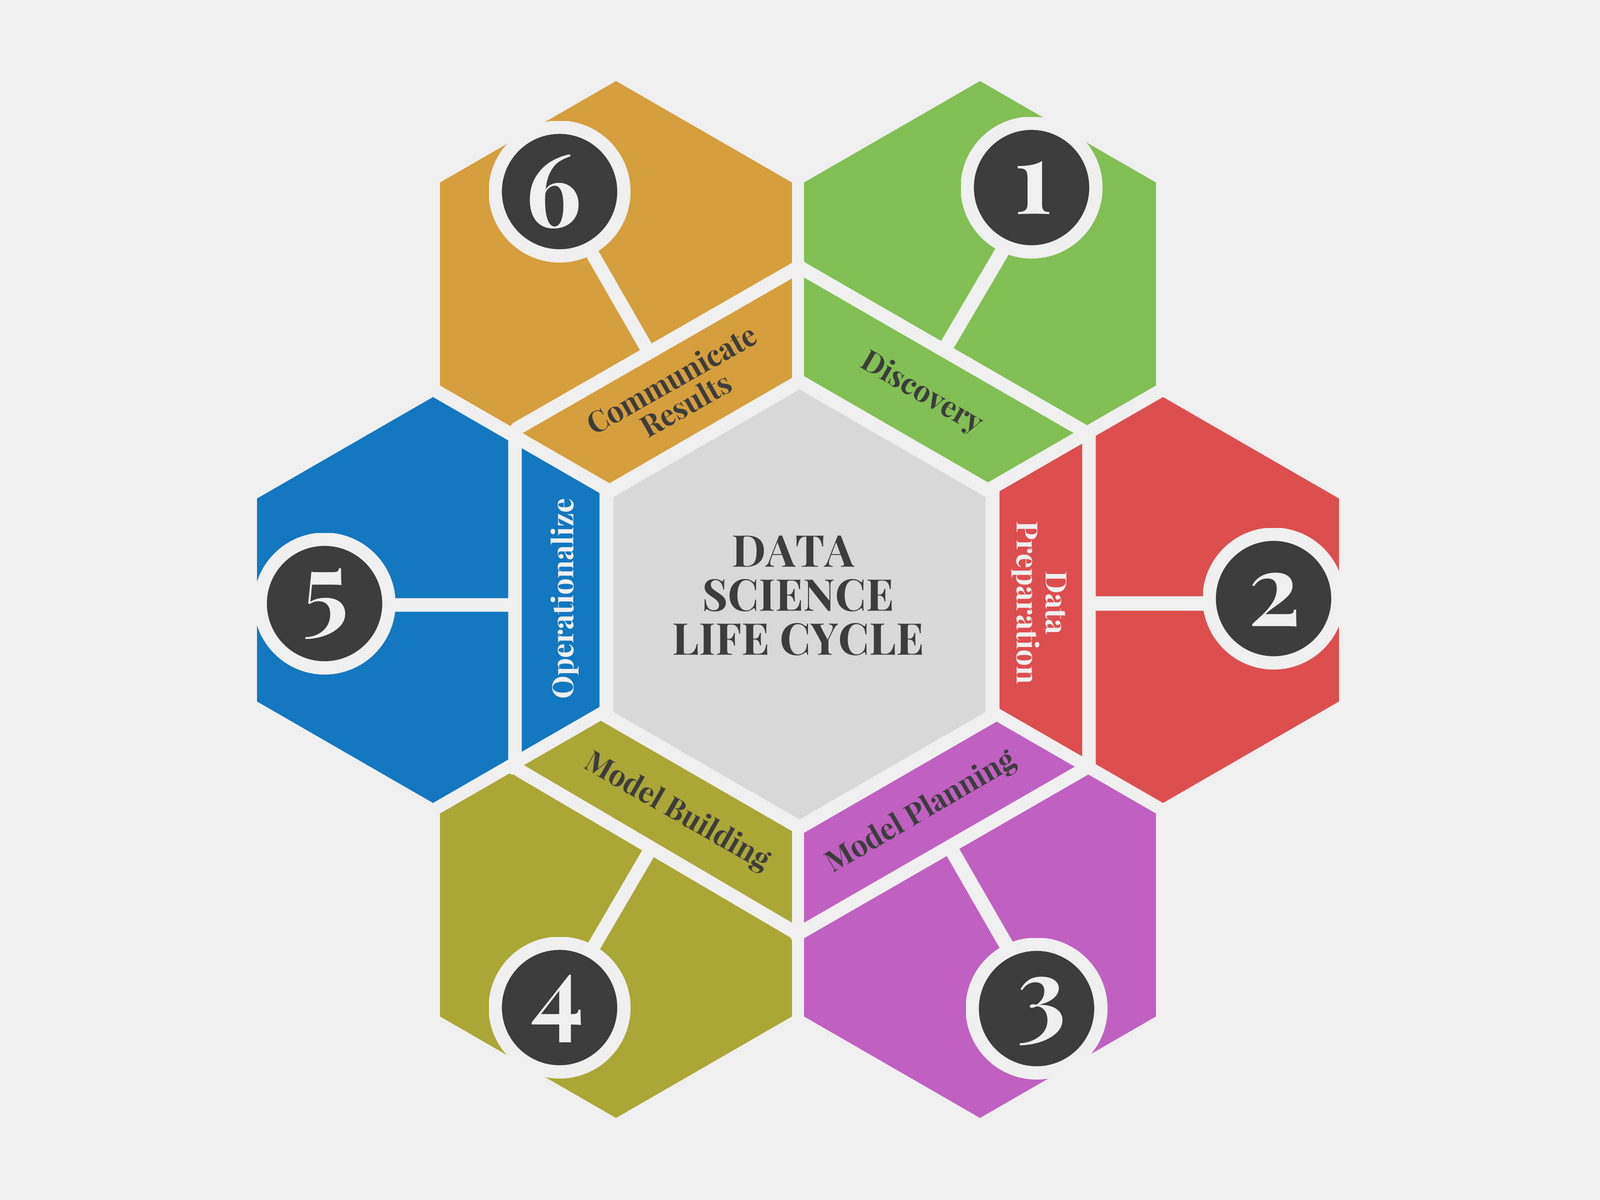 Data Science Life Cycle